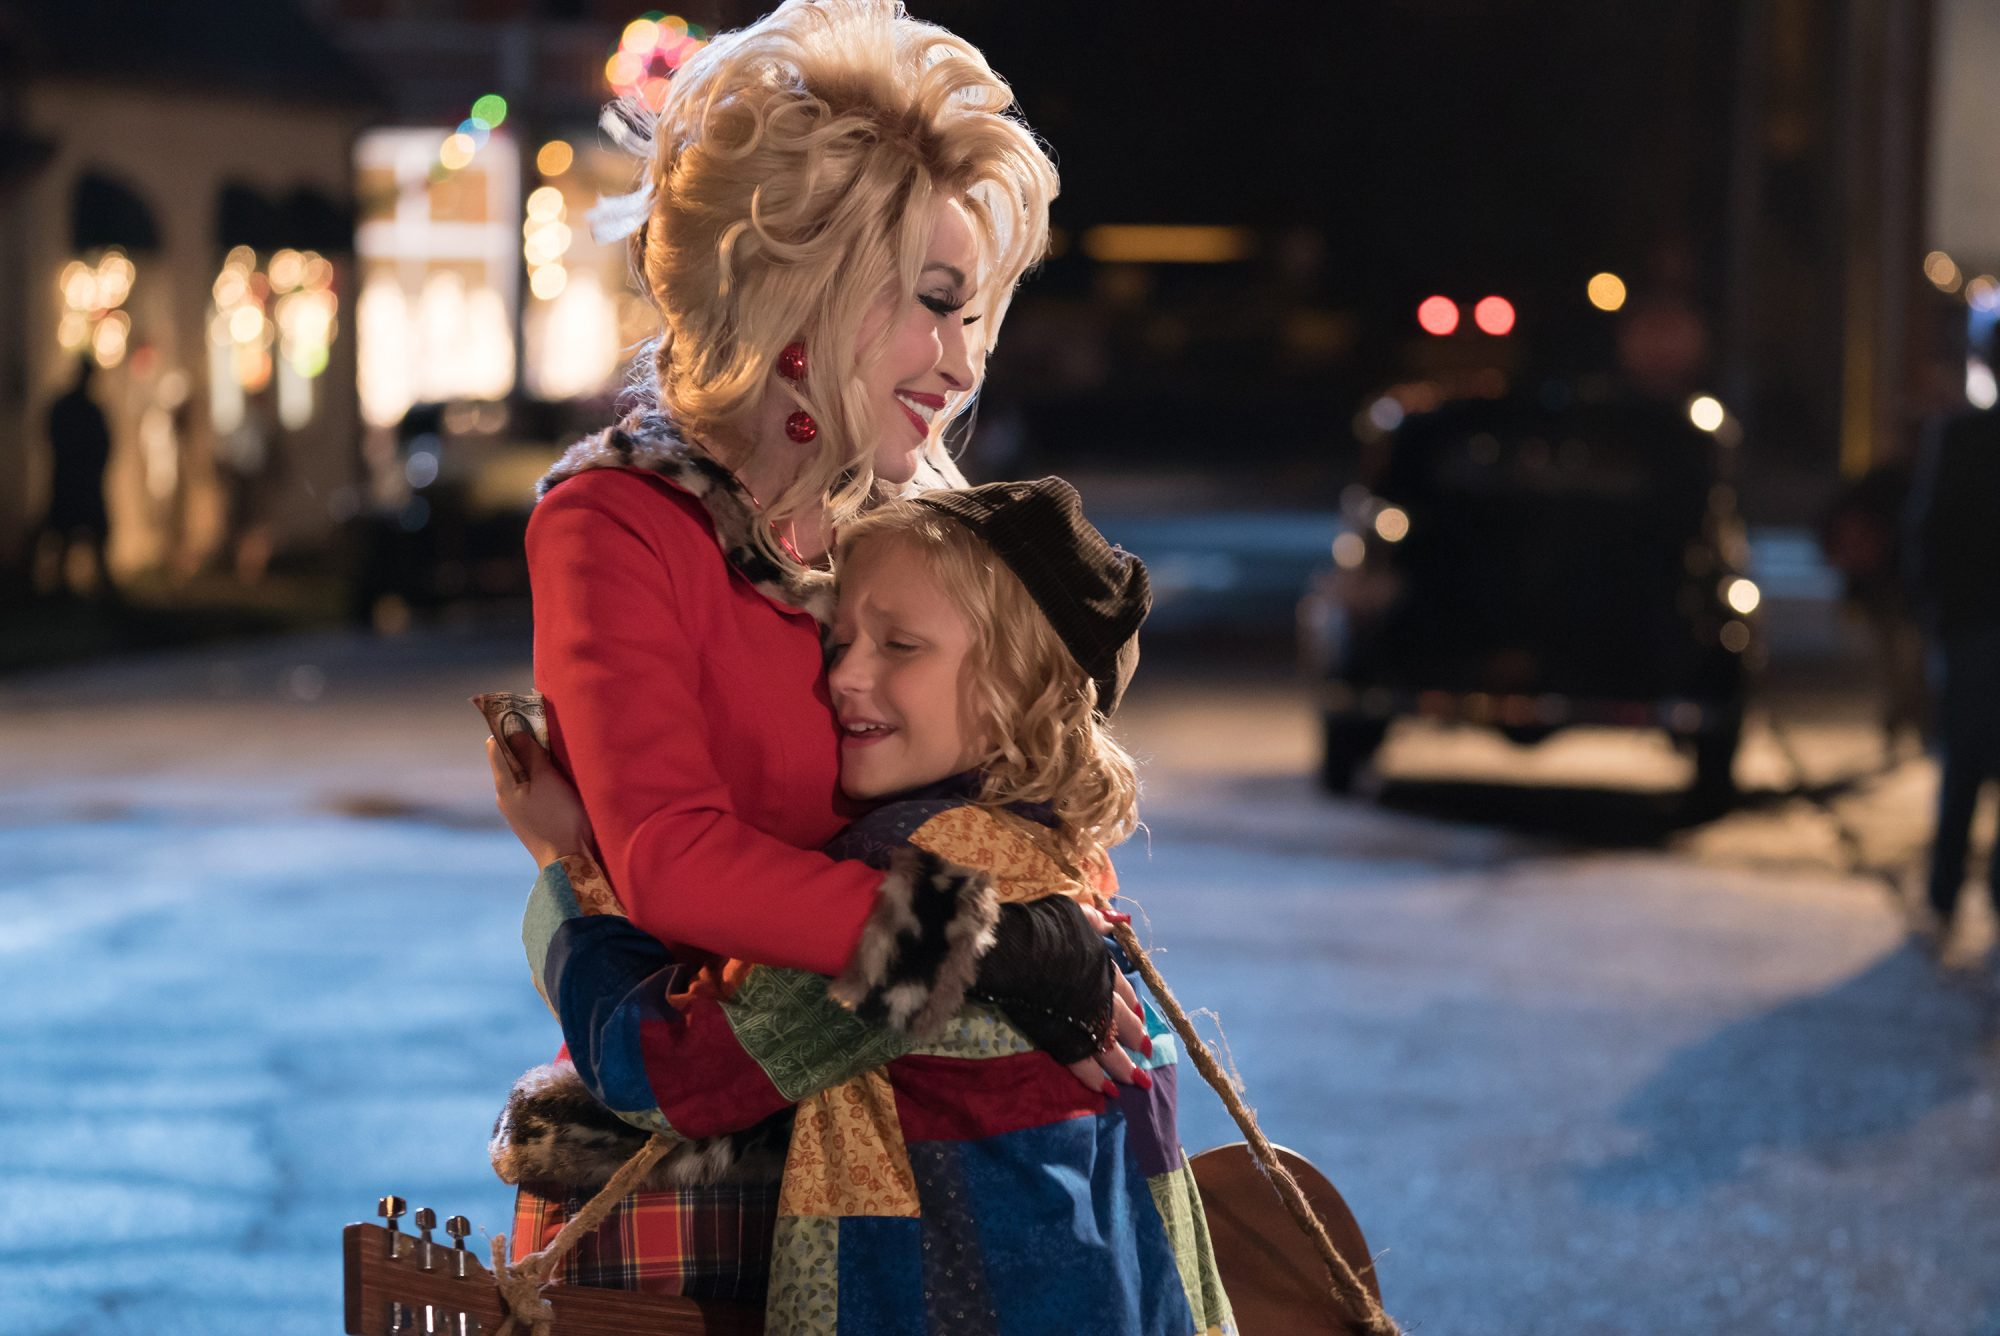 Dolly Parton in Christmas of Many Colors Movie